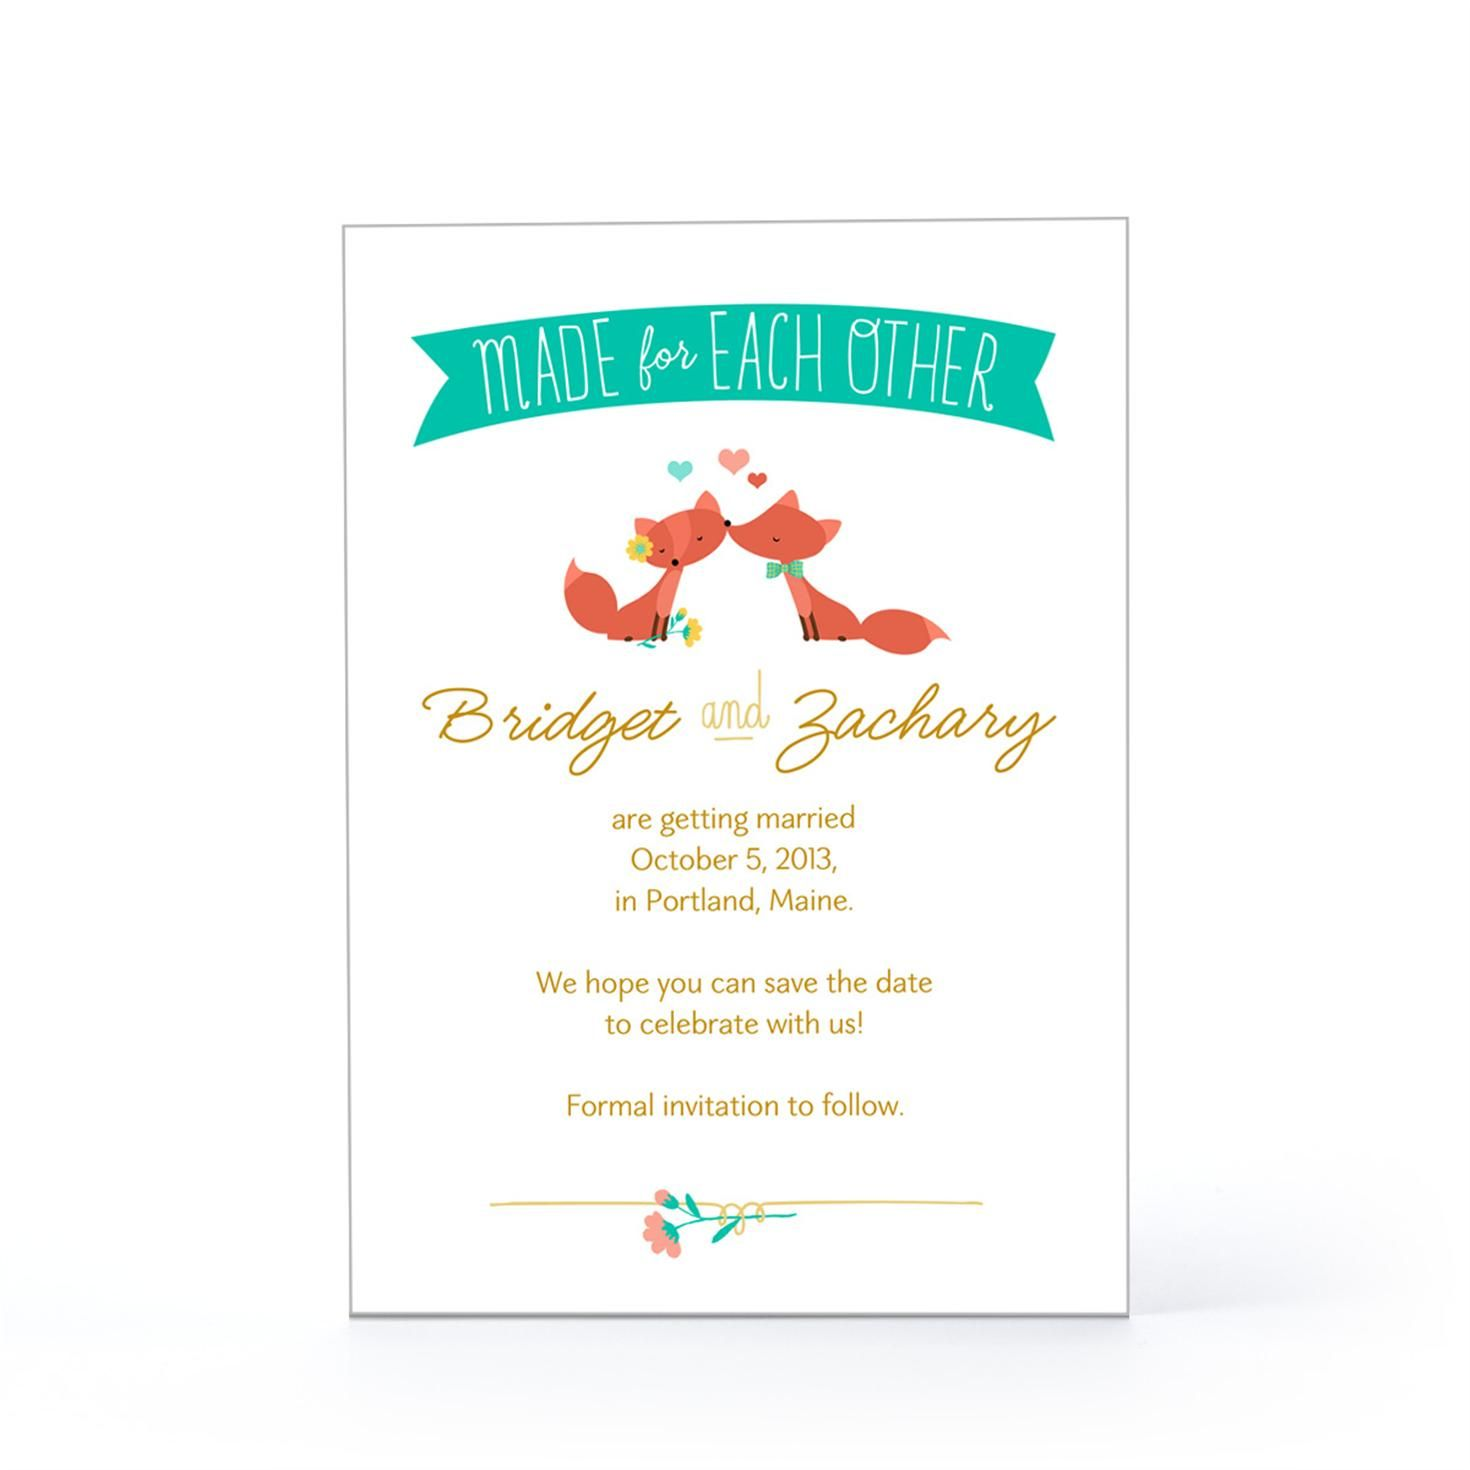 Made For Each Other Wedding Announcement Hallmark Hallmark Wedding Invitations Custom Wedding Invitations Online Invitation Card